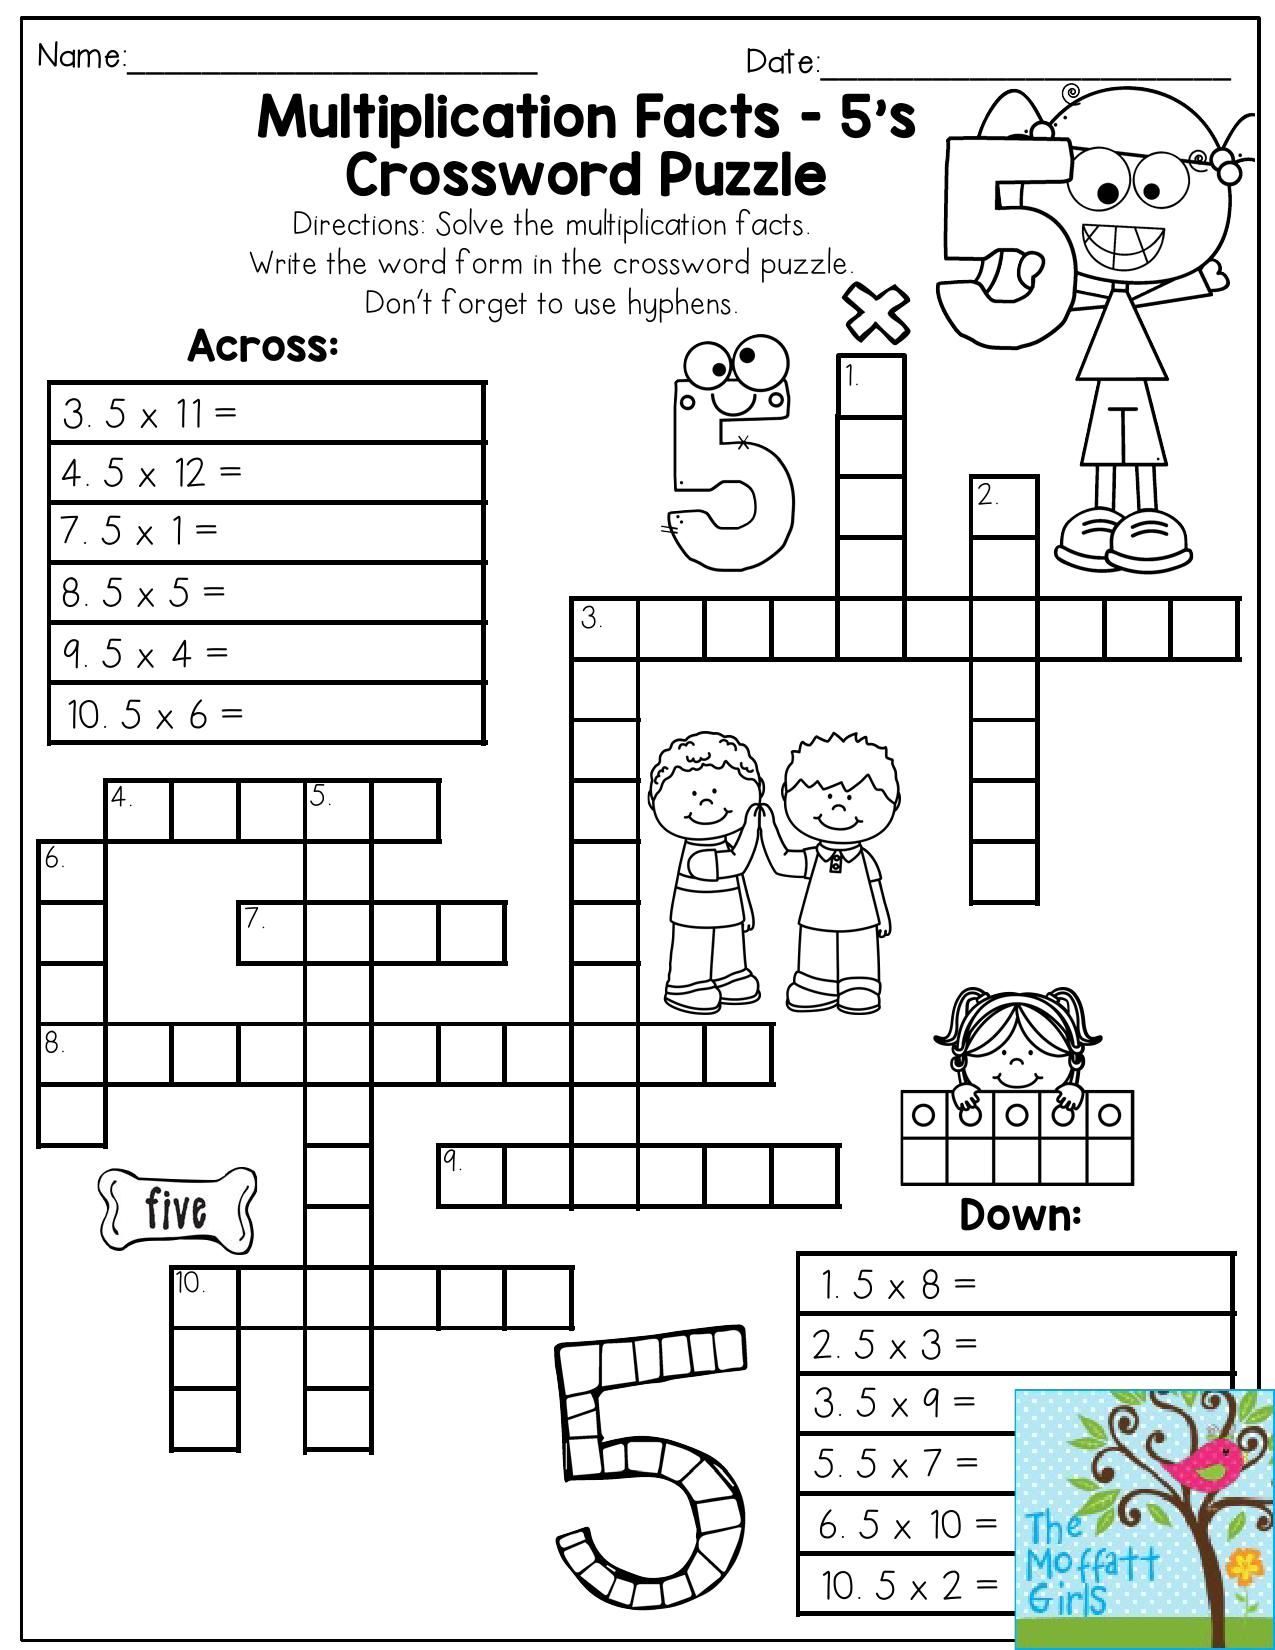 Multiplication Facts Crossword Puzzle- Third Grade Students Love - Crossword Puzzle Printable 3Rd Grade